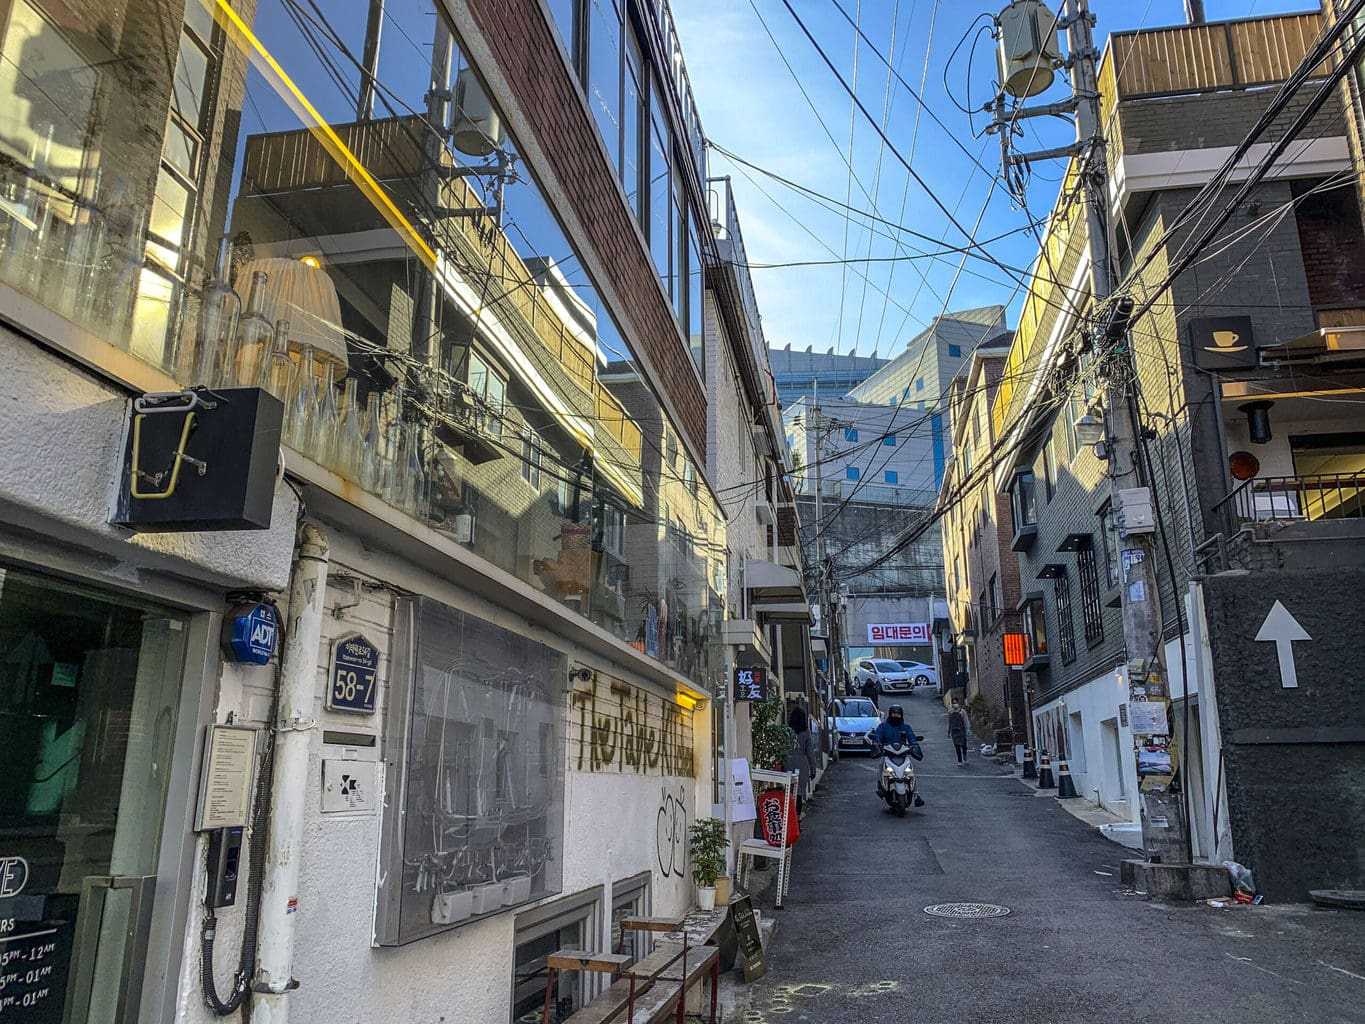 The back roads of Hannam-dong